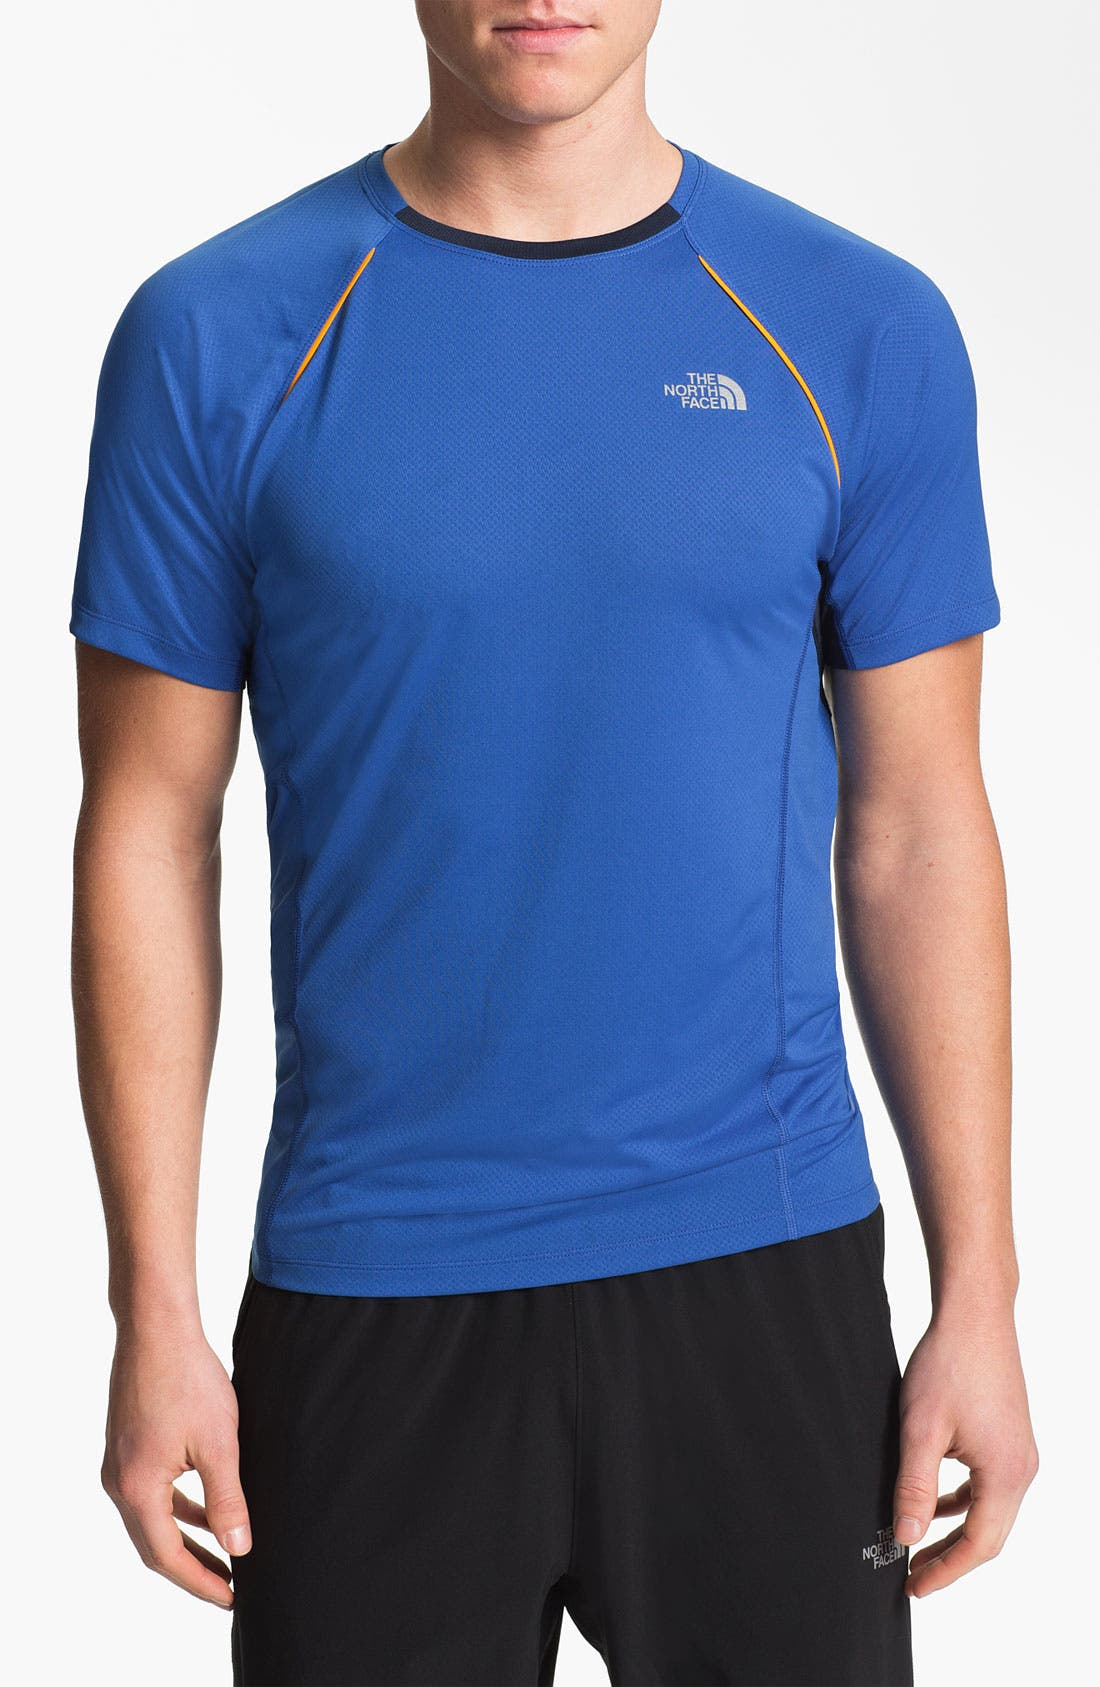 Alternate Image 1 Selected - The North Face 'Better Than Naked' Performance T-Shirt